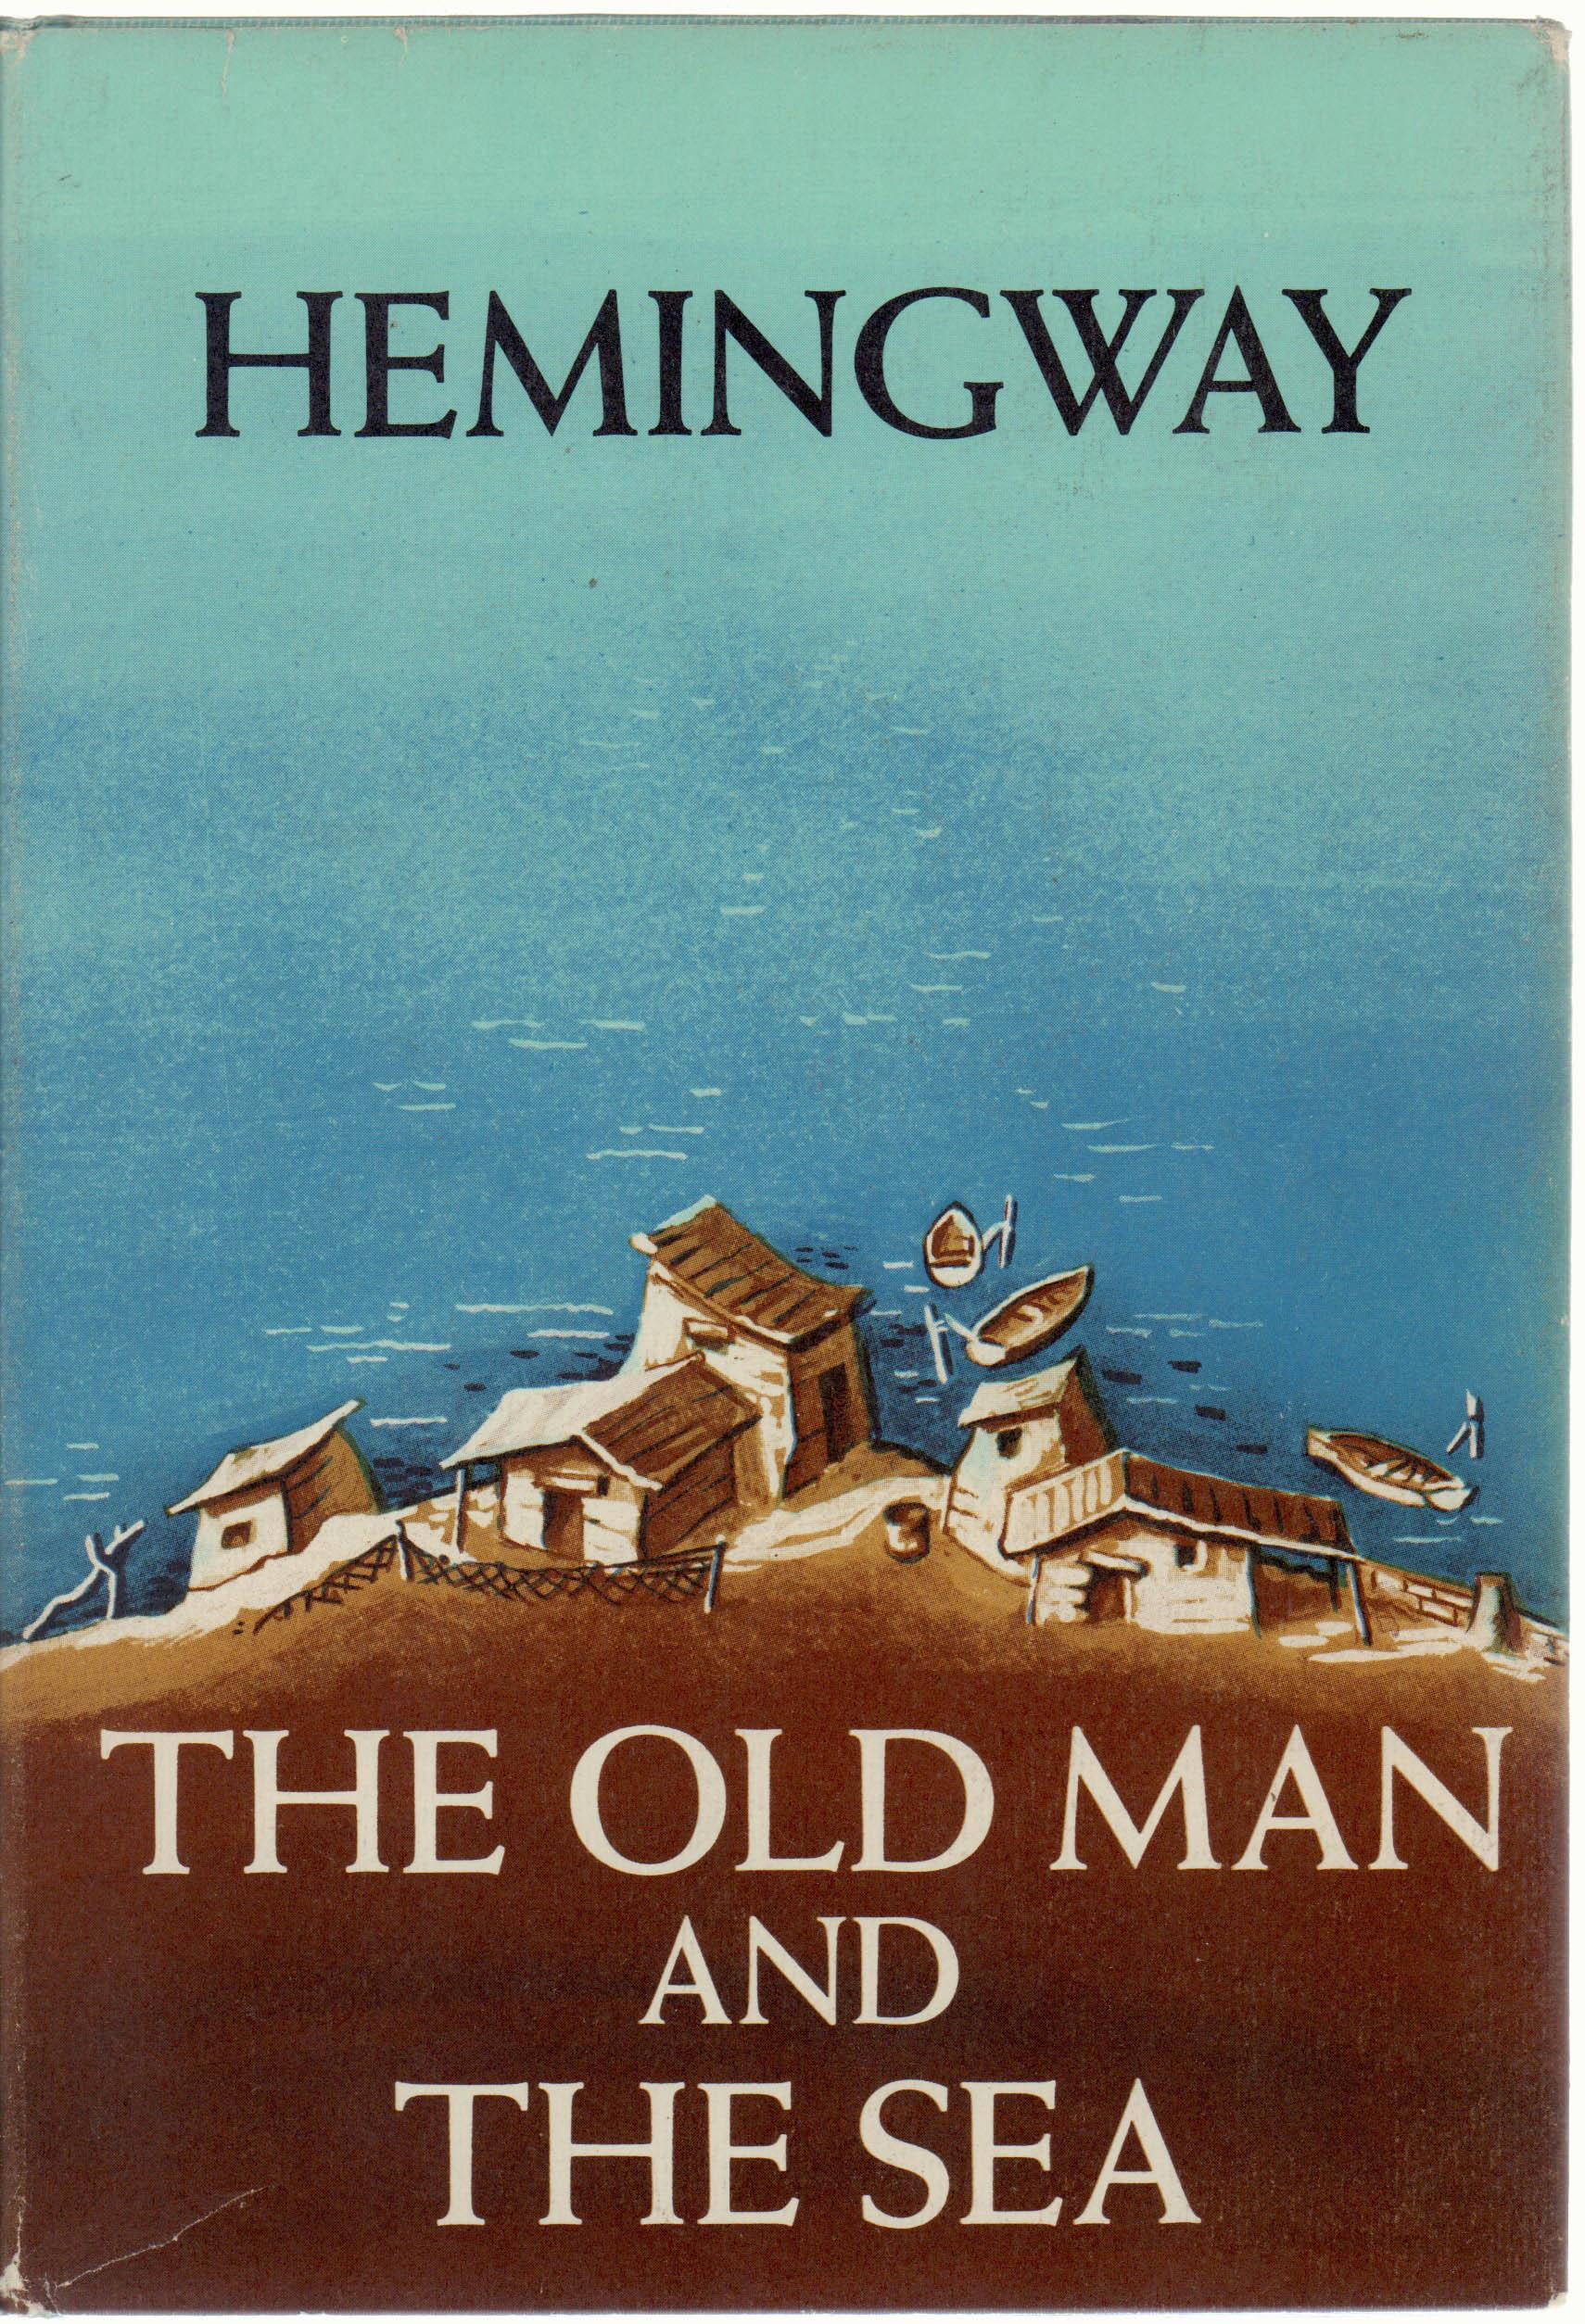 a book analysis of the old man and the sea by ernest hemingway The old man and the sea by ernest hemingway home / literature / the old man and the sea / the old man and the sea analysis literary devices in the old man and the sea symbolism hence the title the old man and the sea, not the old man and his shack.